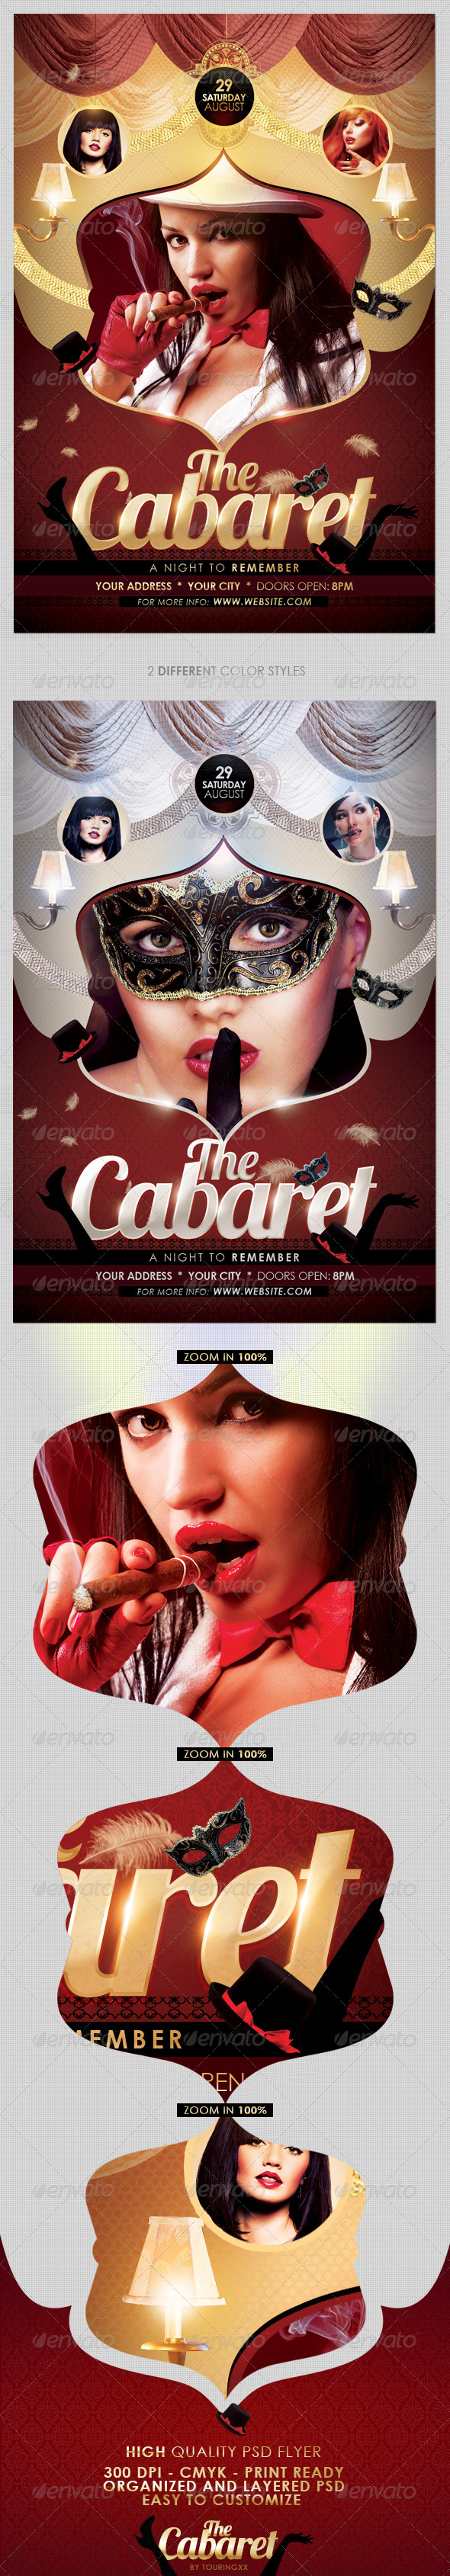 The Cabaret Flyer Template - Flyers Print Templates